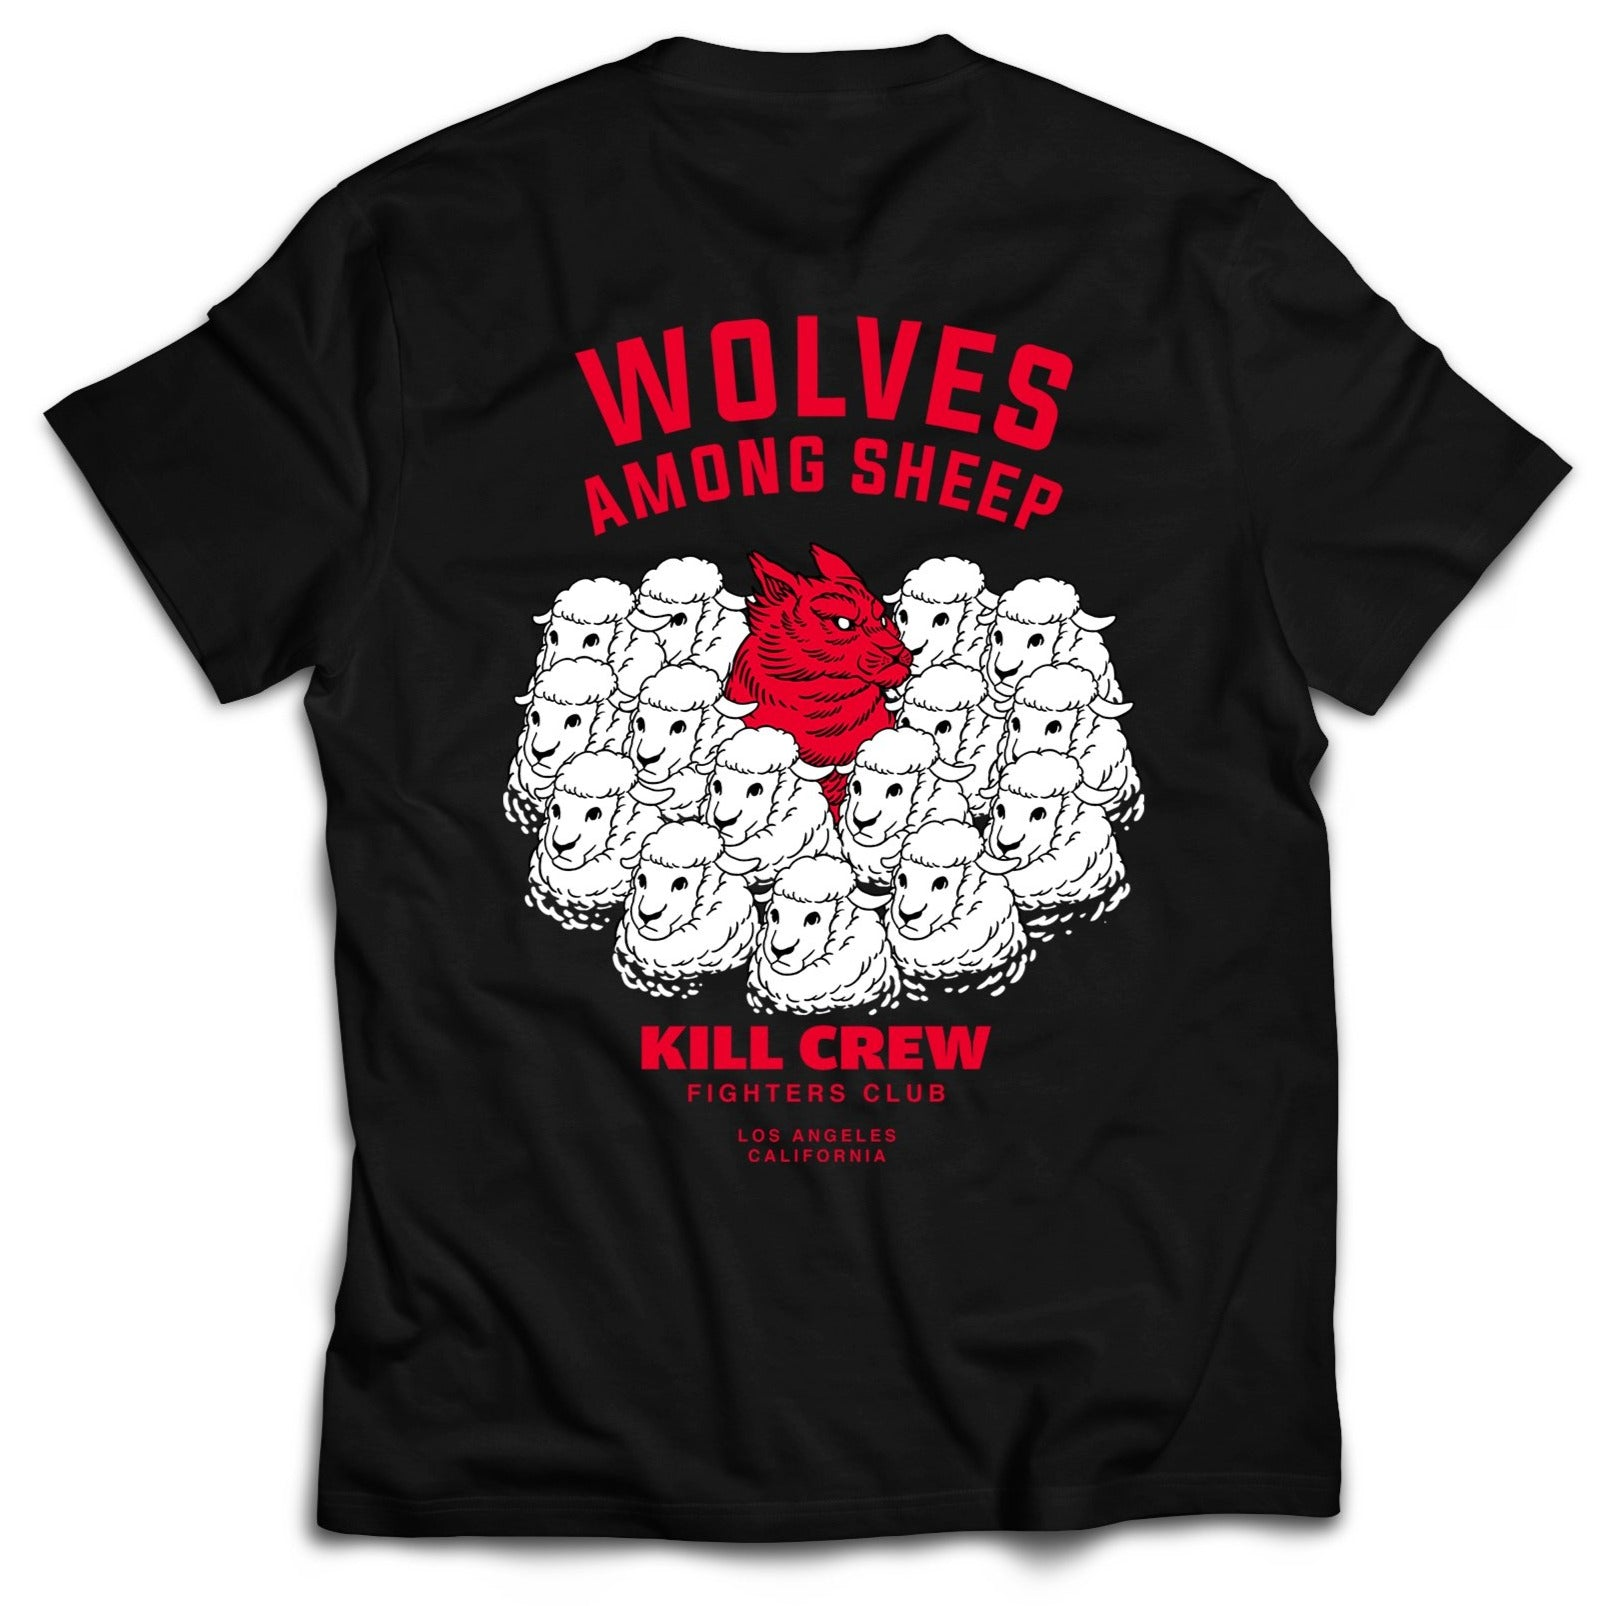 WOLVES AMONG SHEEP T-SHIRT - BLACK